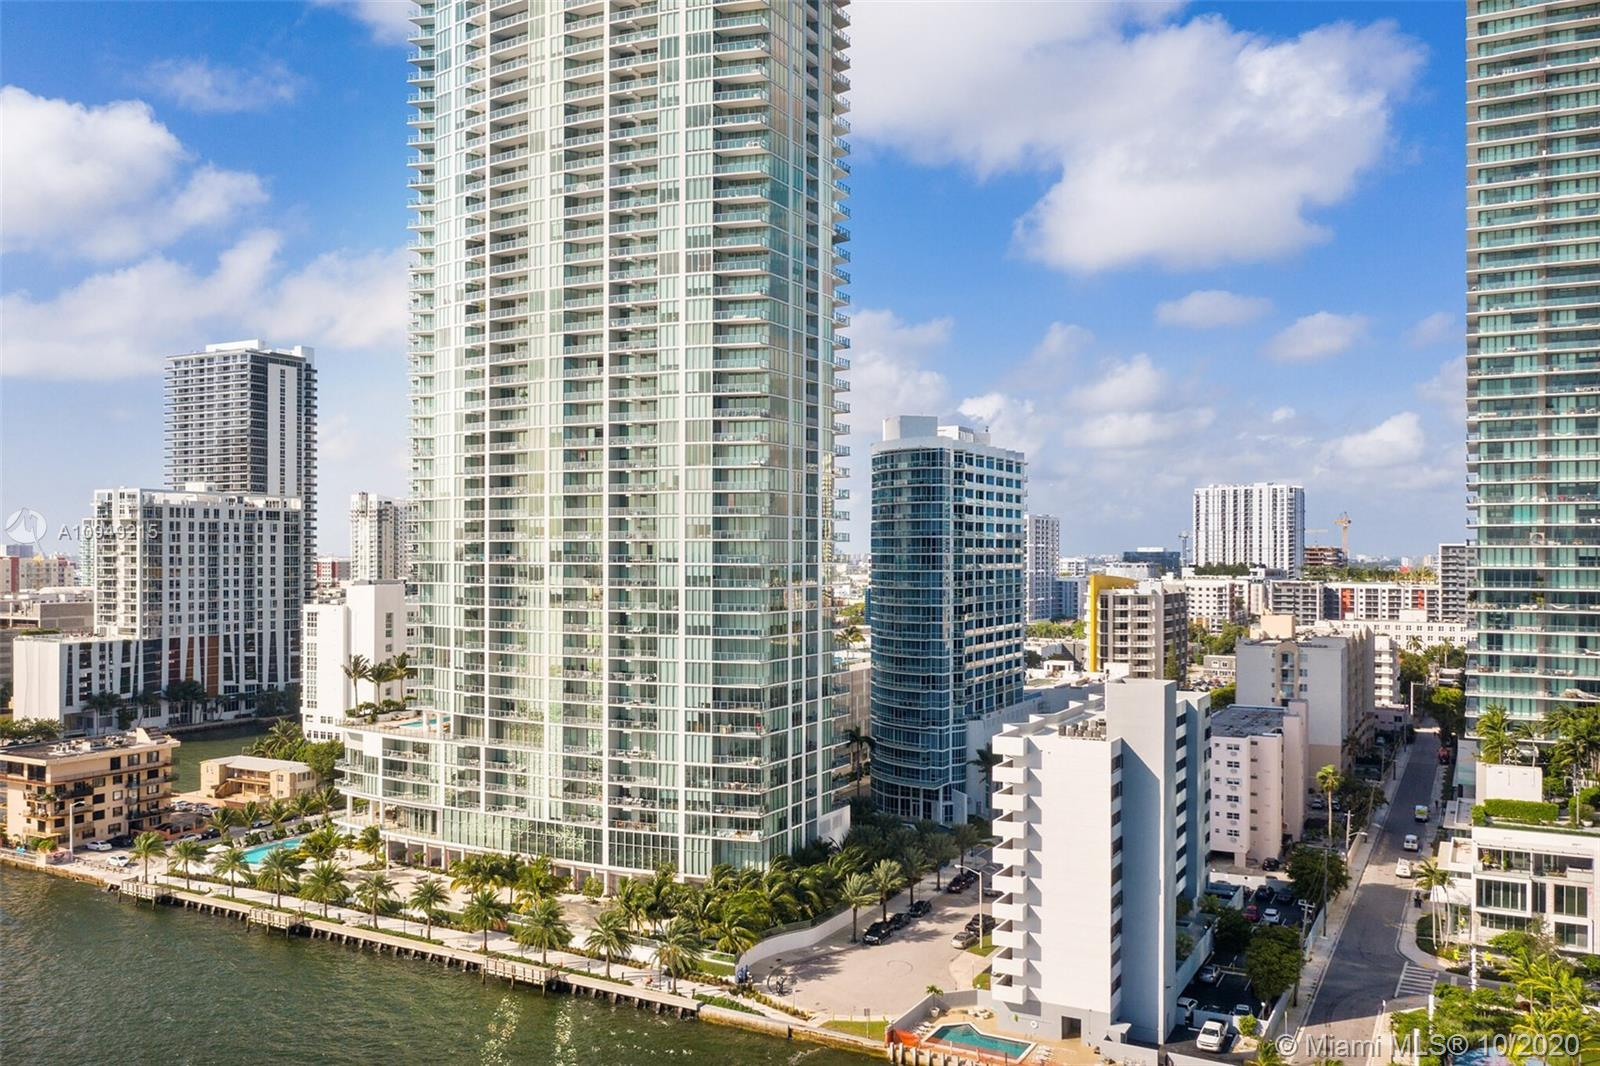 Spectacular 1 bed/1.5 baths with an extraordinary views. This amazing condo unit features wood floor